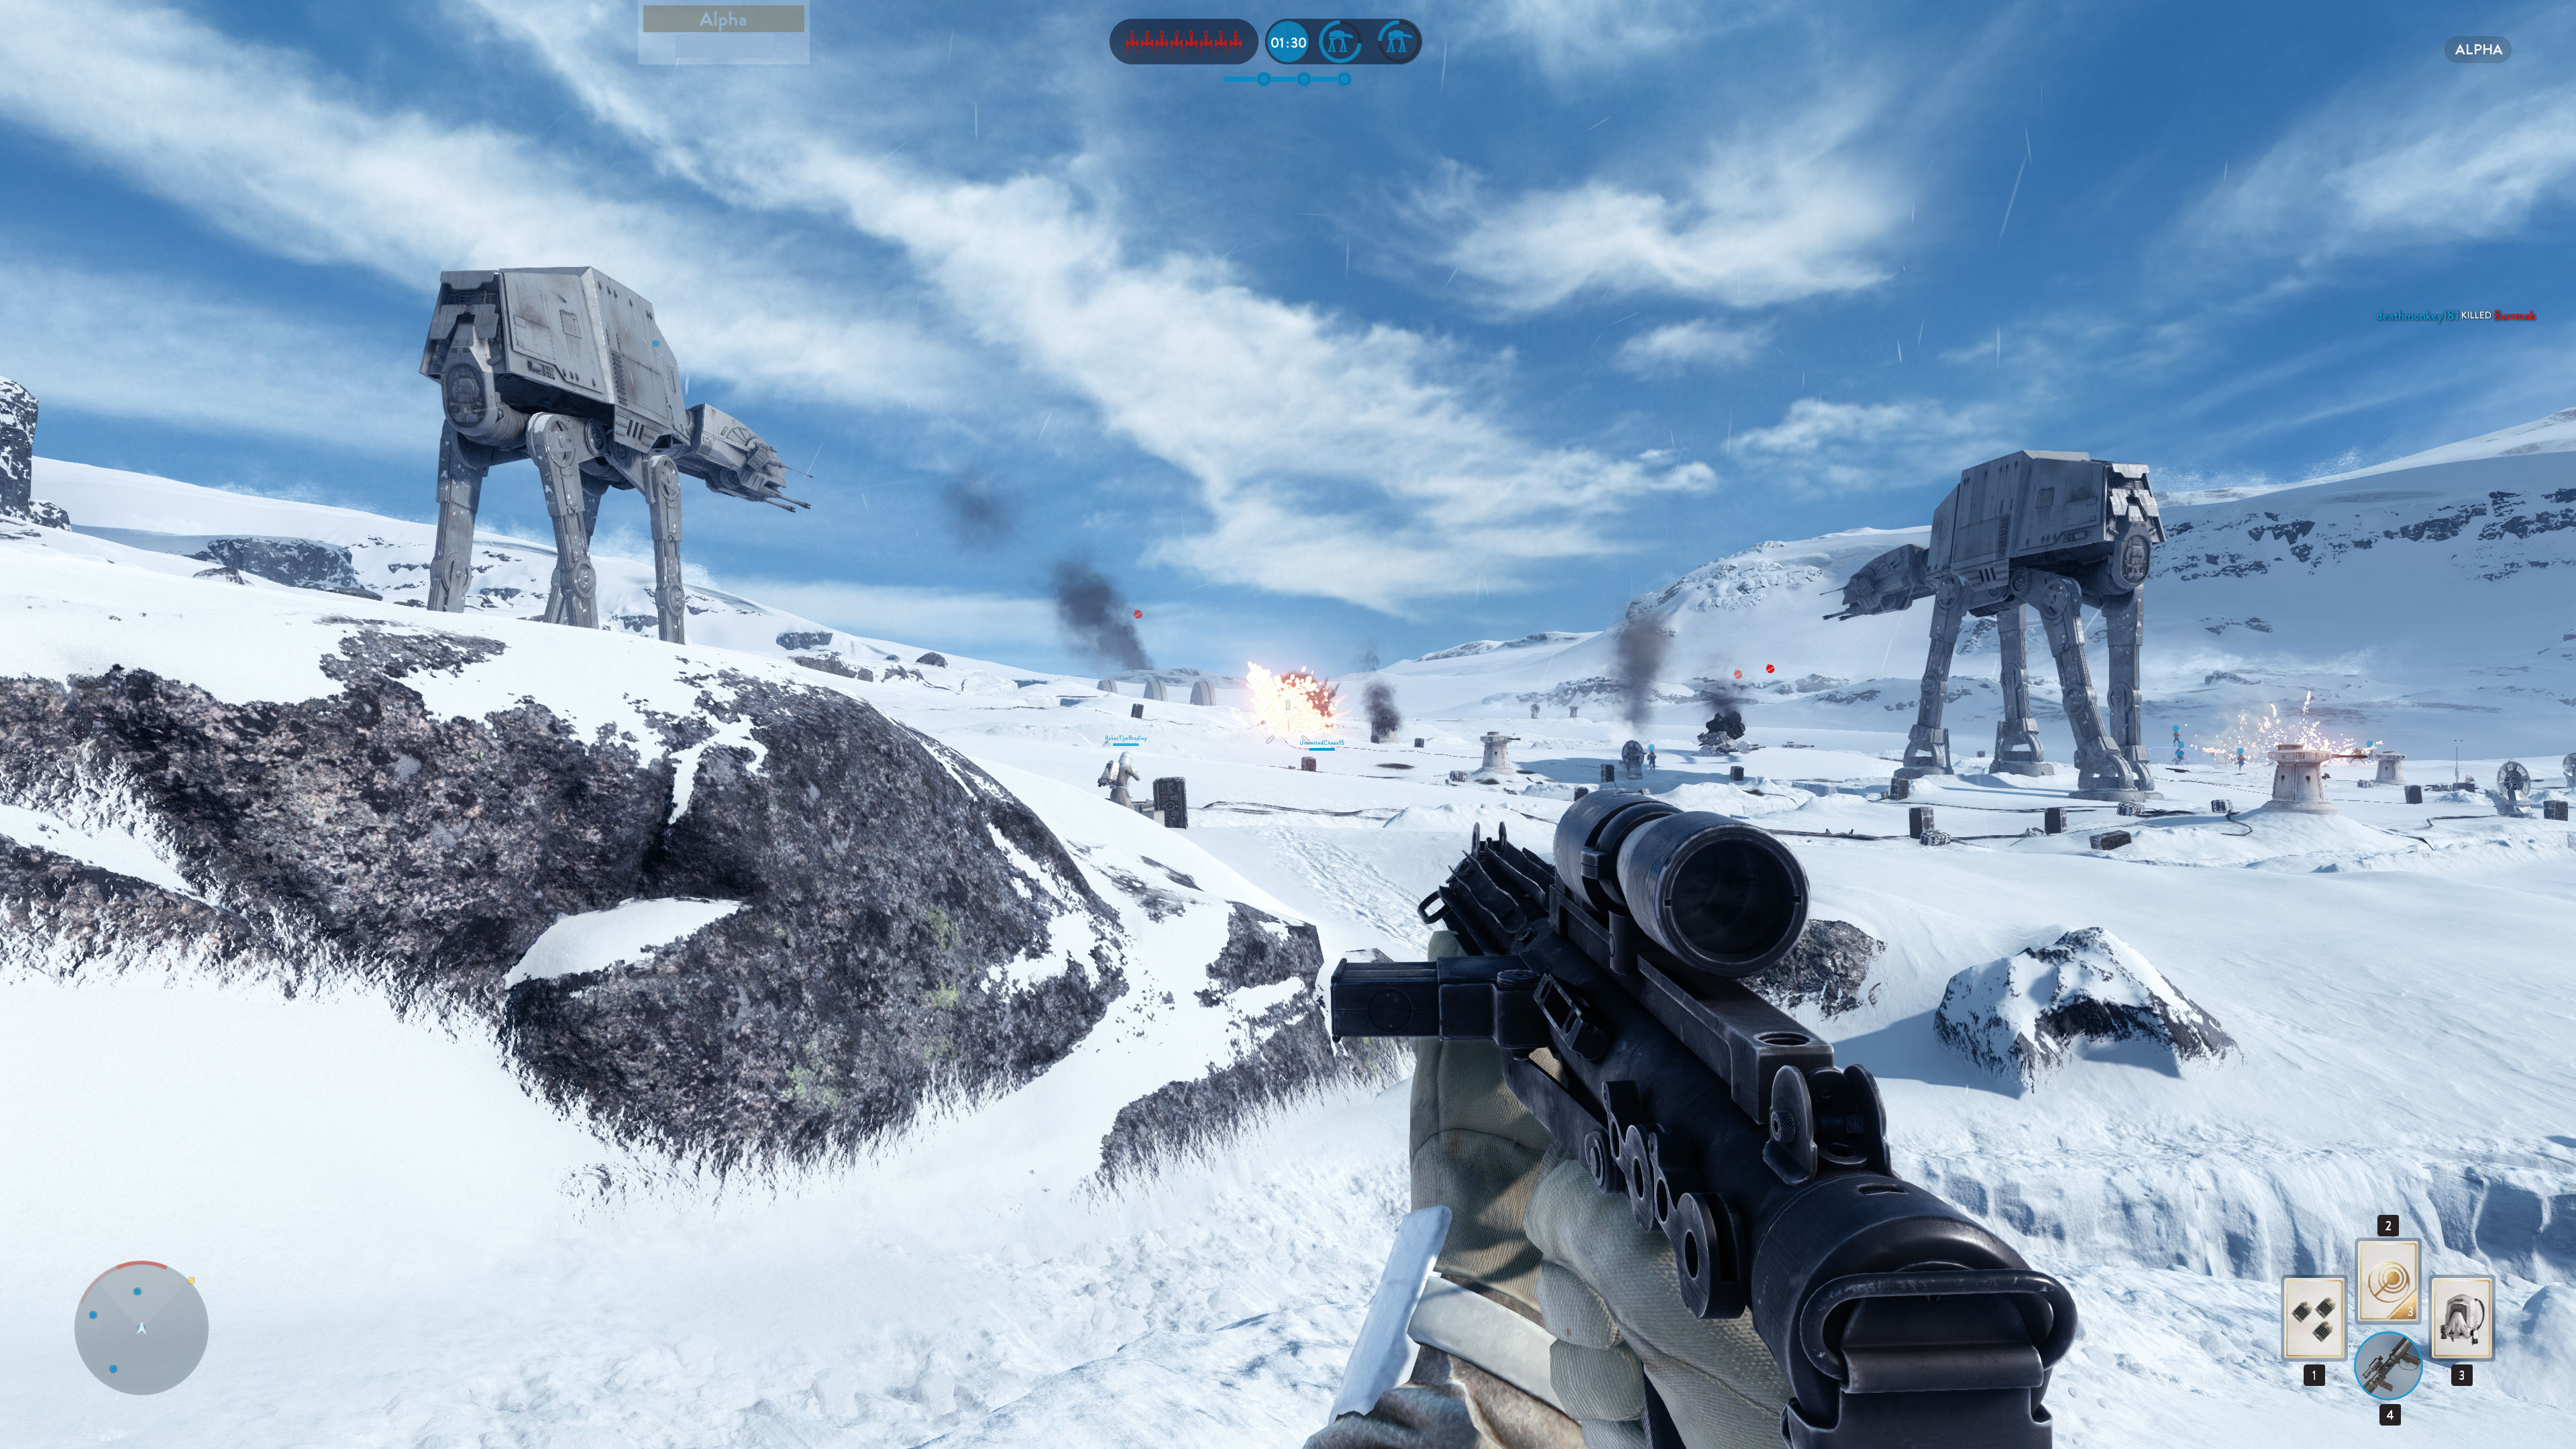 star wars battlefront 1 maps with 4k Ultra Screenshots Star Wars Battlefront Alpha Zeigen Hoth 136778 on Beat  Mega Man character likewise 1225 together with Steadfast Dwarven Spider moreover 2015 10 27 Watch The Emperor Do Force Lightning In Star Wars Battlefront also Star Wars Map 3435828.